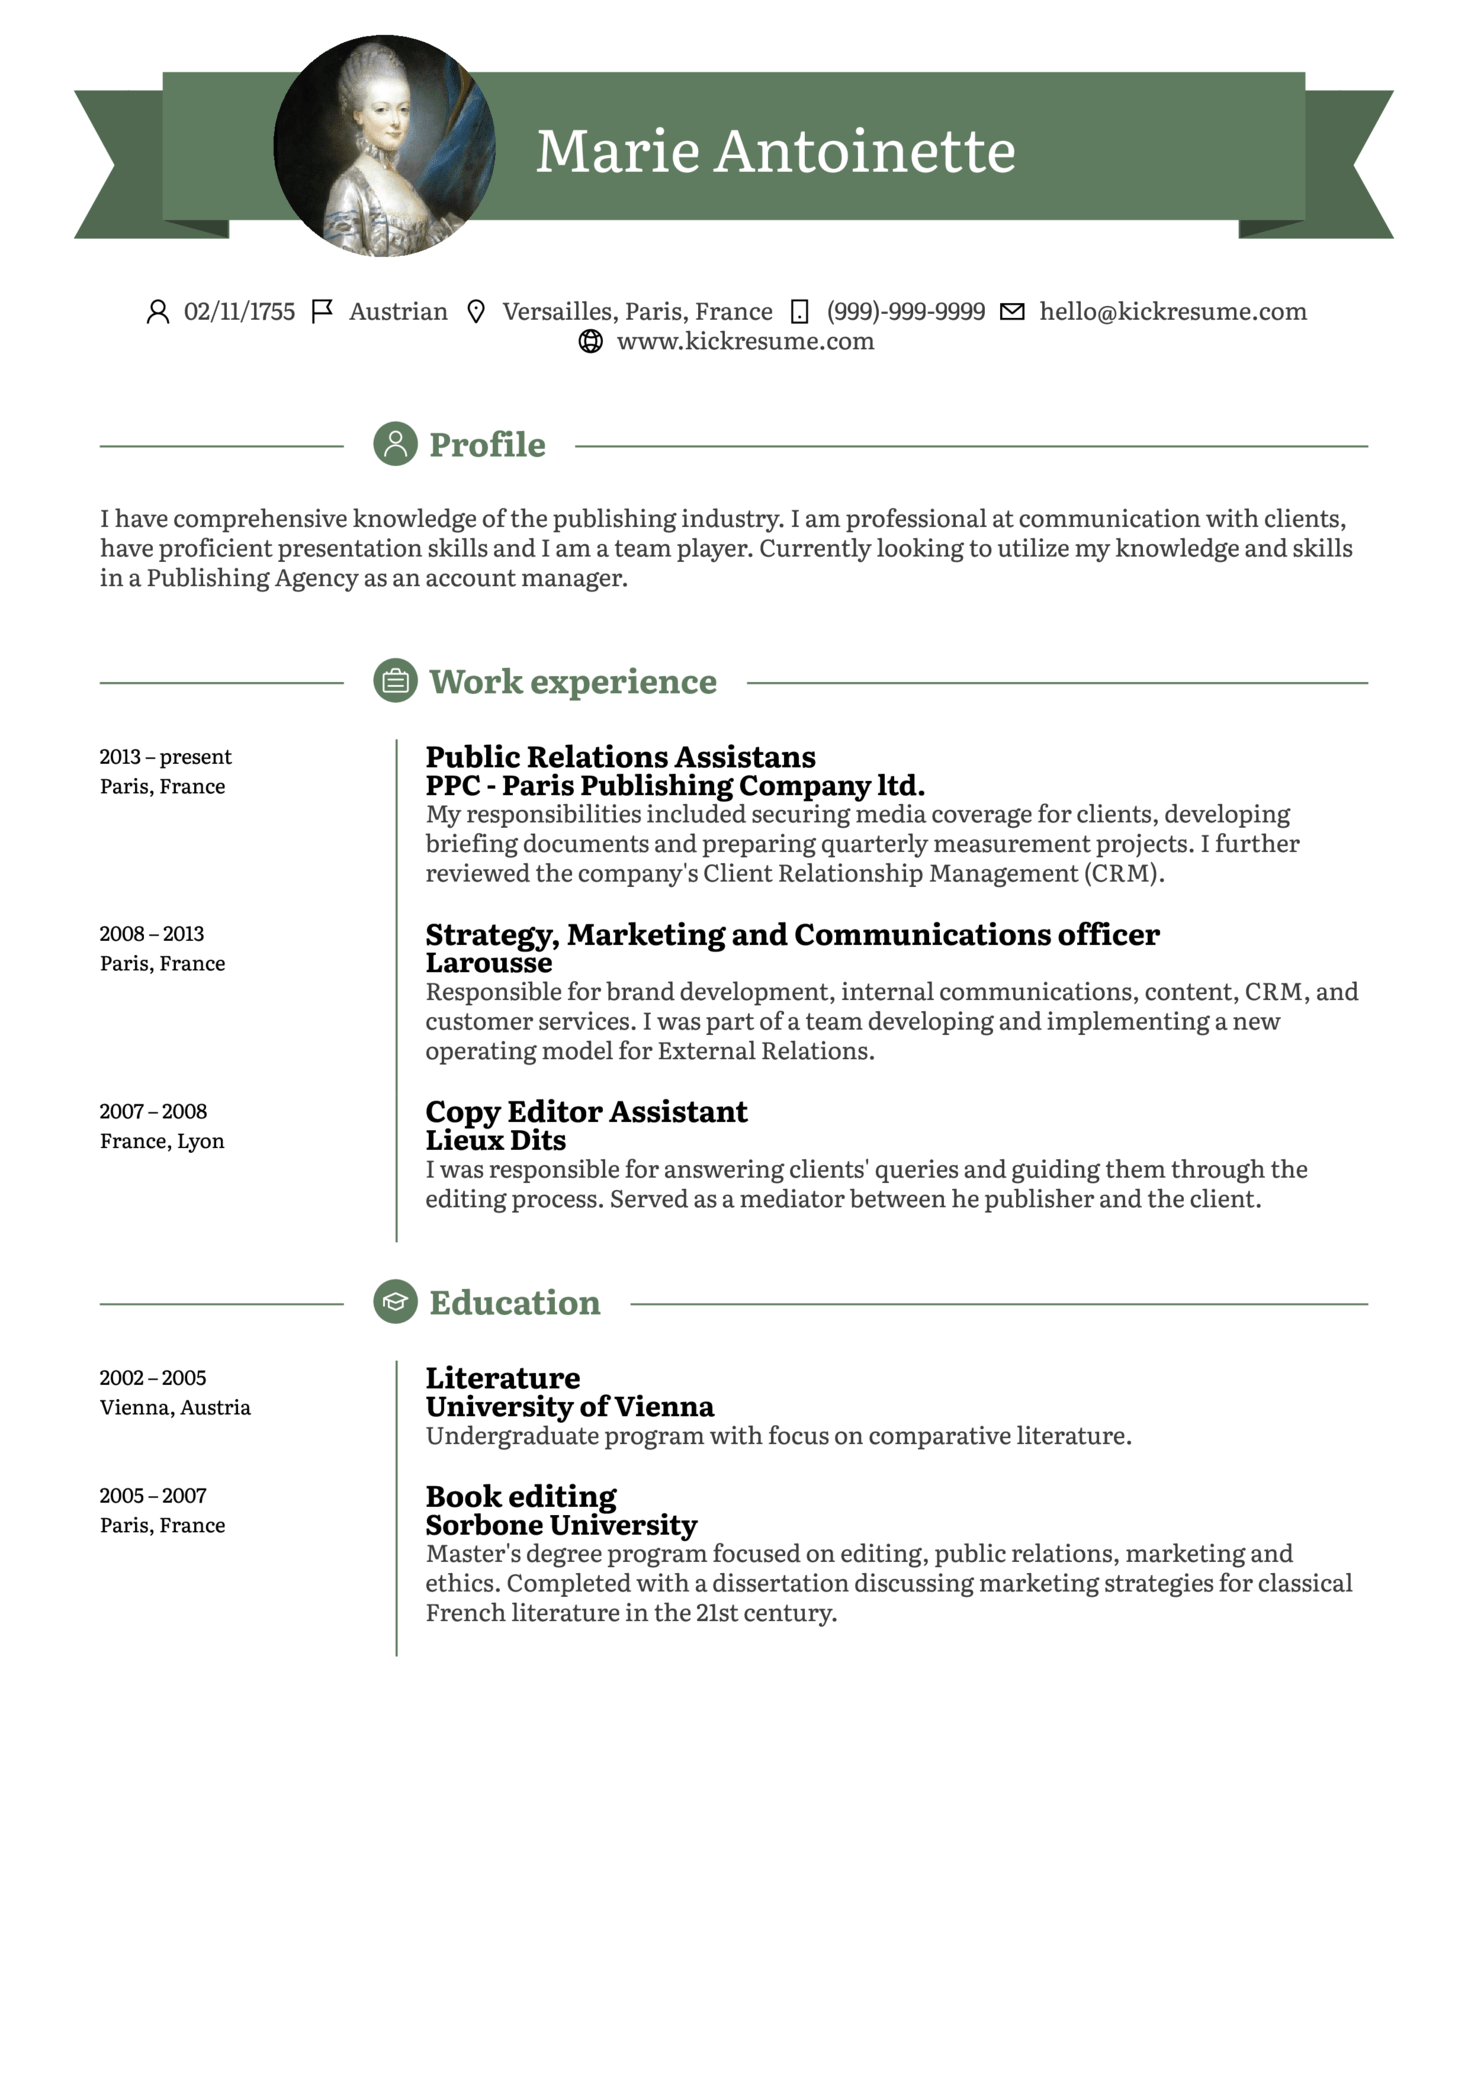 Entry Level Account Manager Resume Sample | Resume samples ...